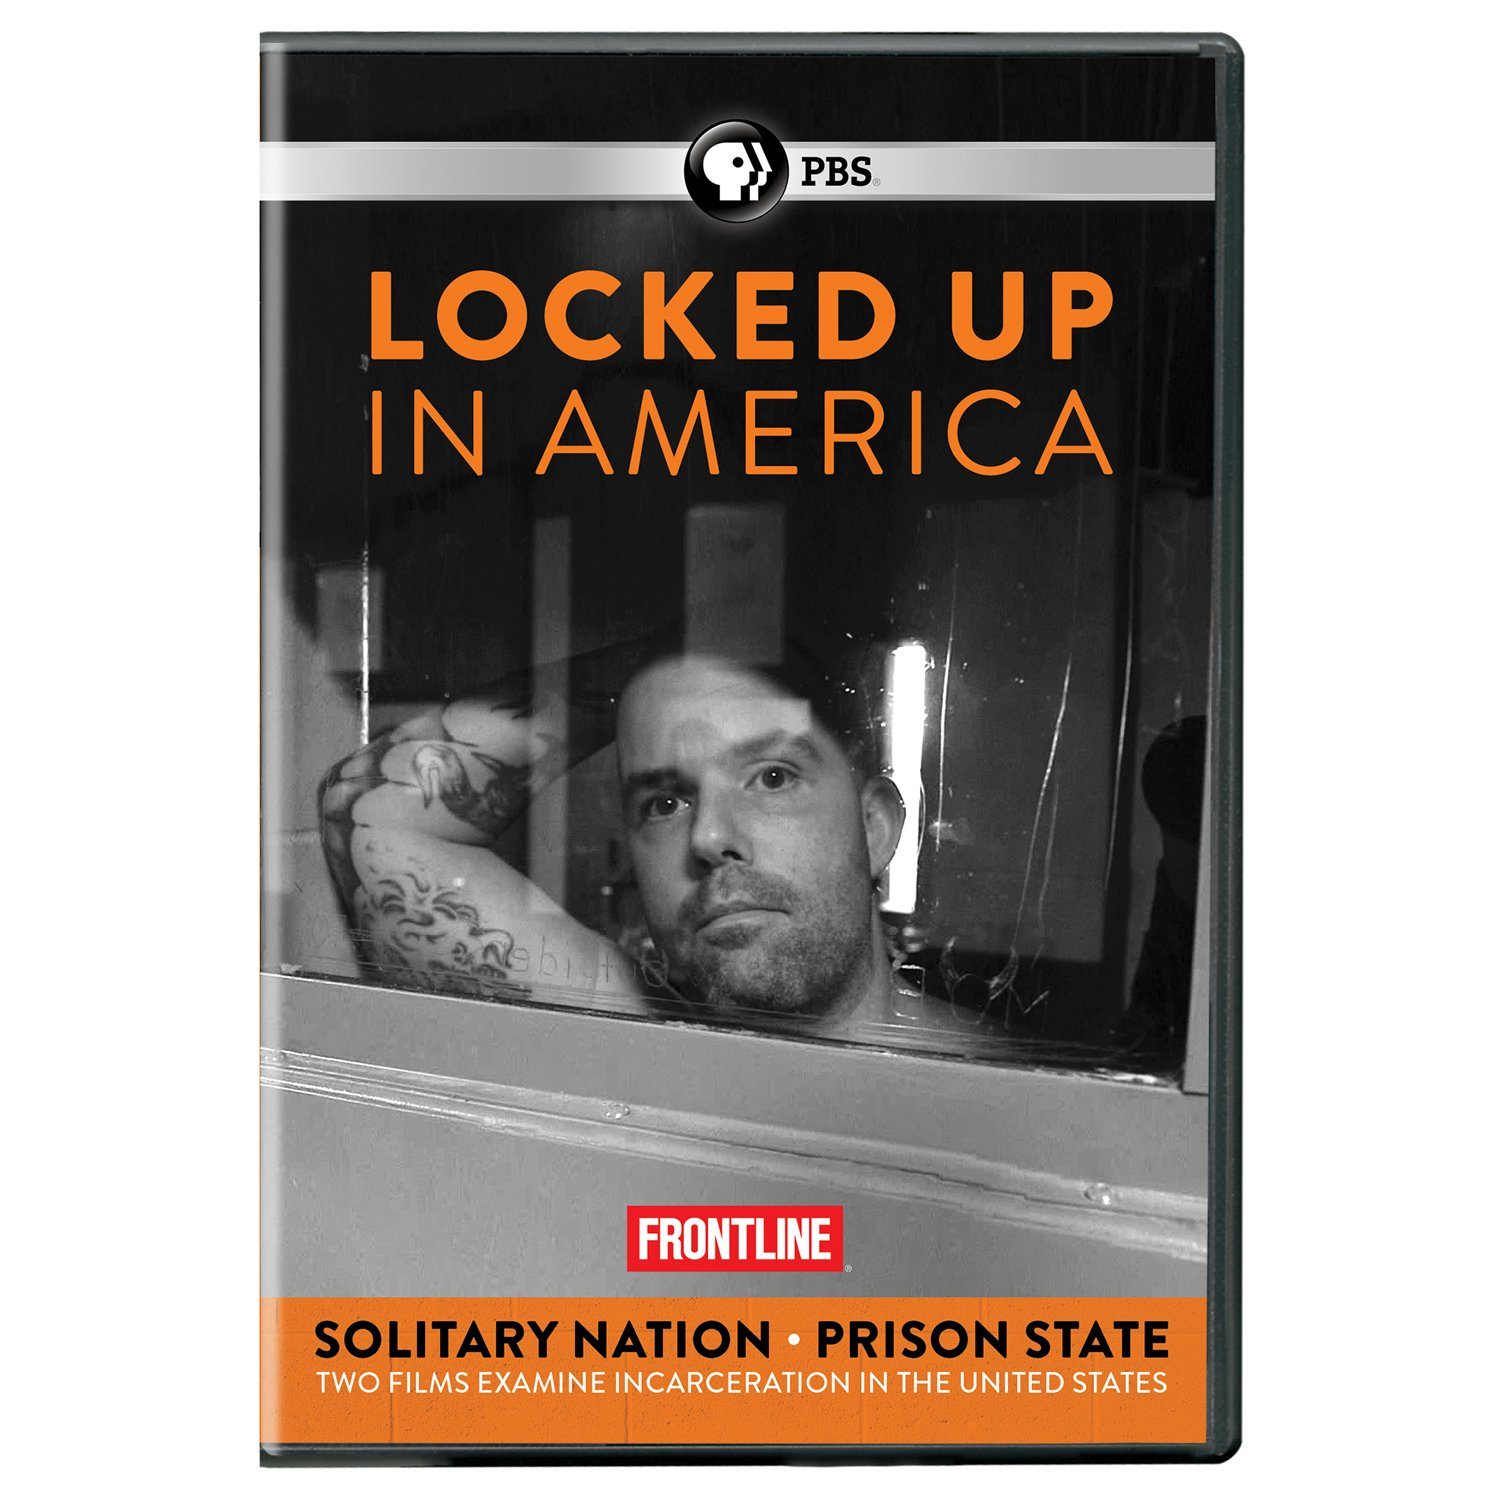 Frontline: Locked Up Manufacturer direct delivery in America - Nation 4 years warranty and Solitary Prison Sta